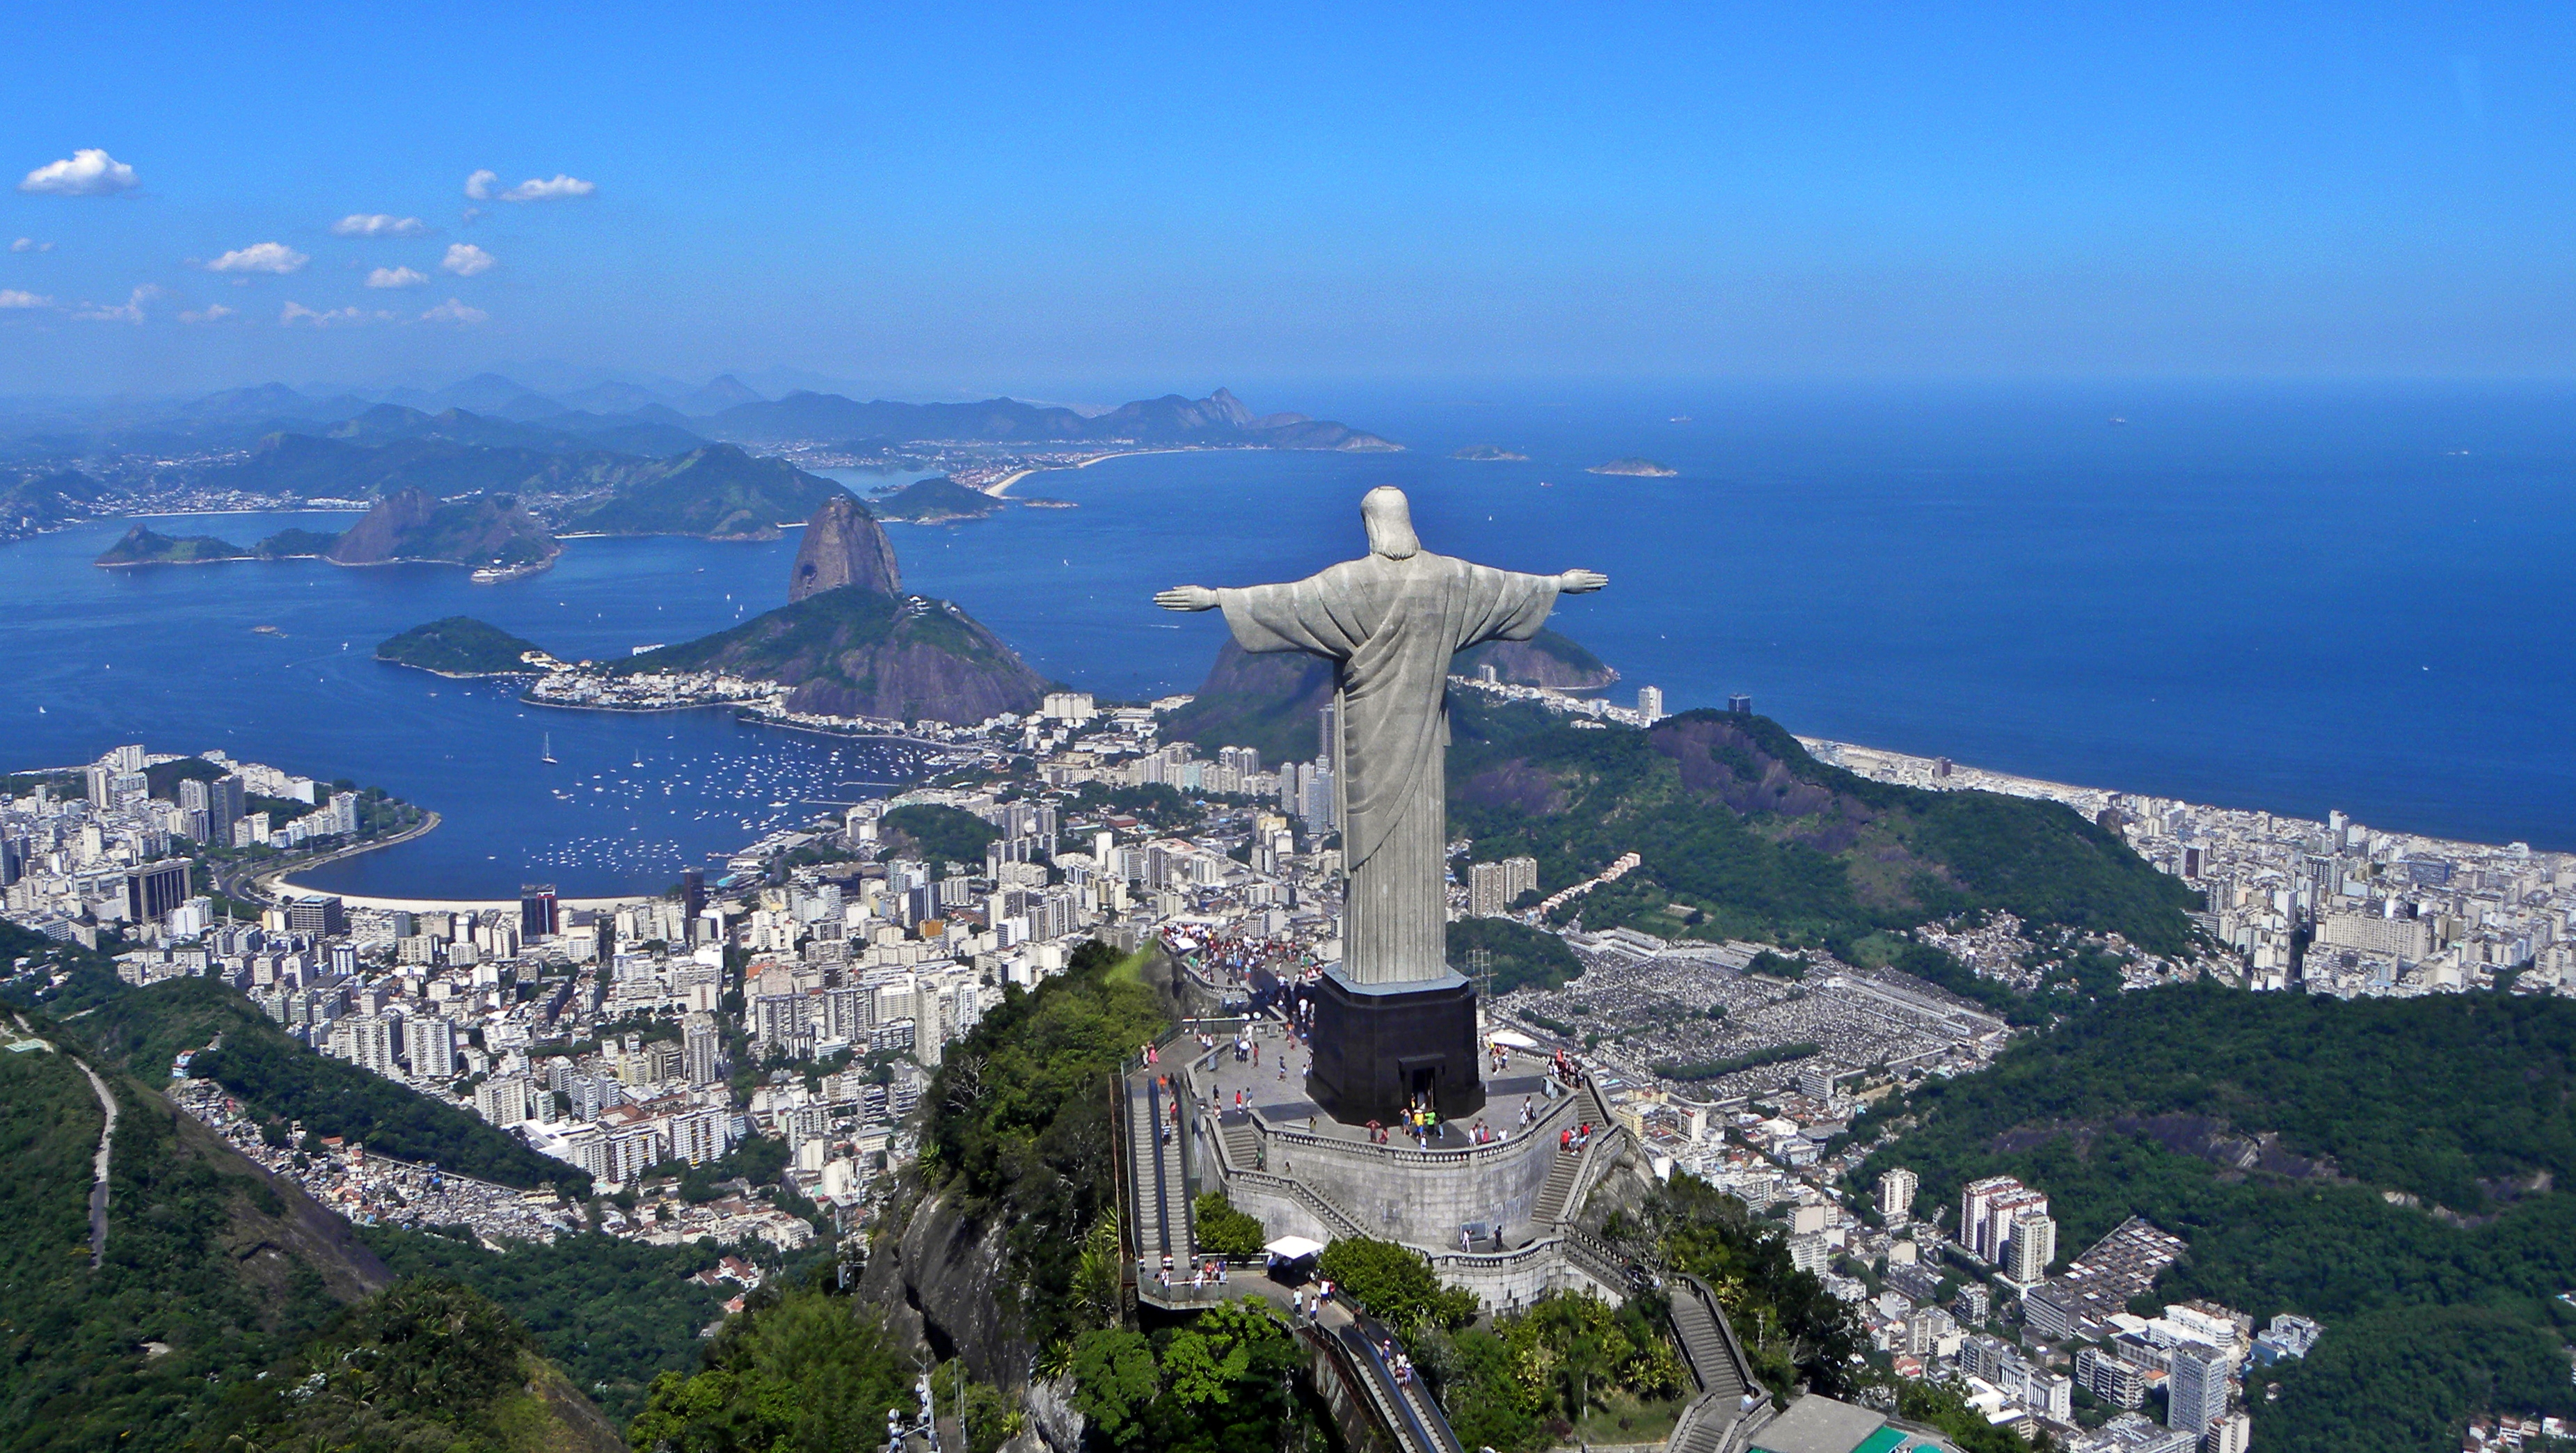 https://upload.wikimedia.org/wikipedia/commons/a/ae/Christ_on_Corcovado_mountain.JPG